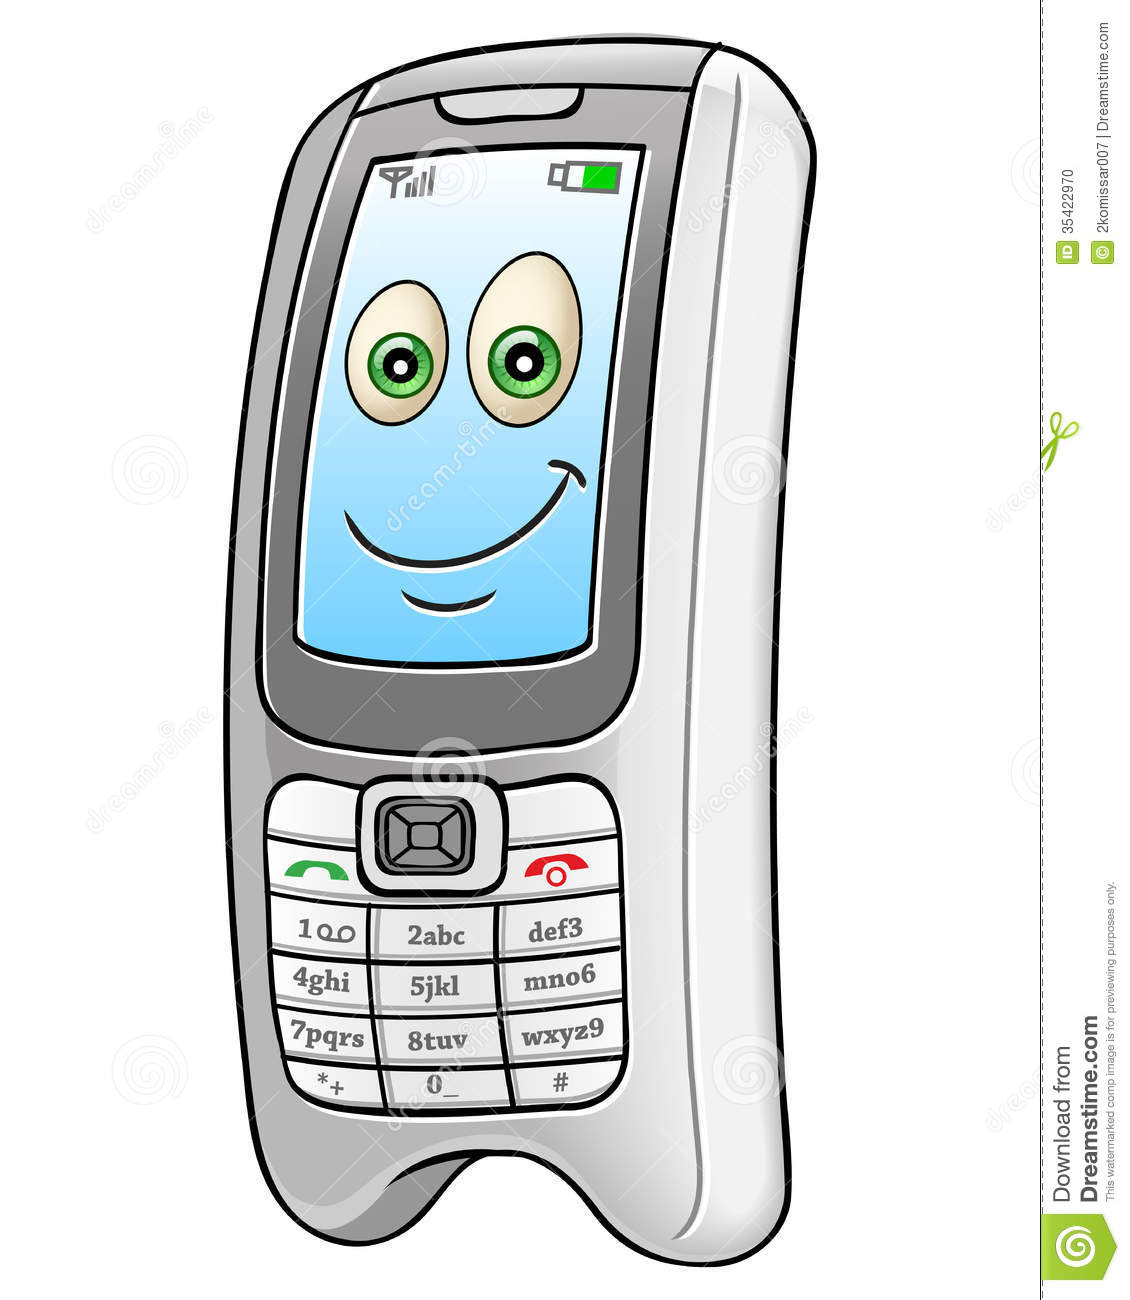 Cartoon mobile phone stock vector. Illustration of ...